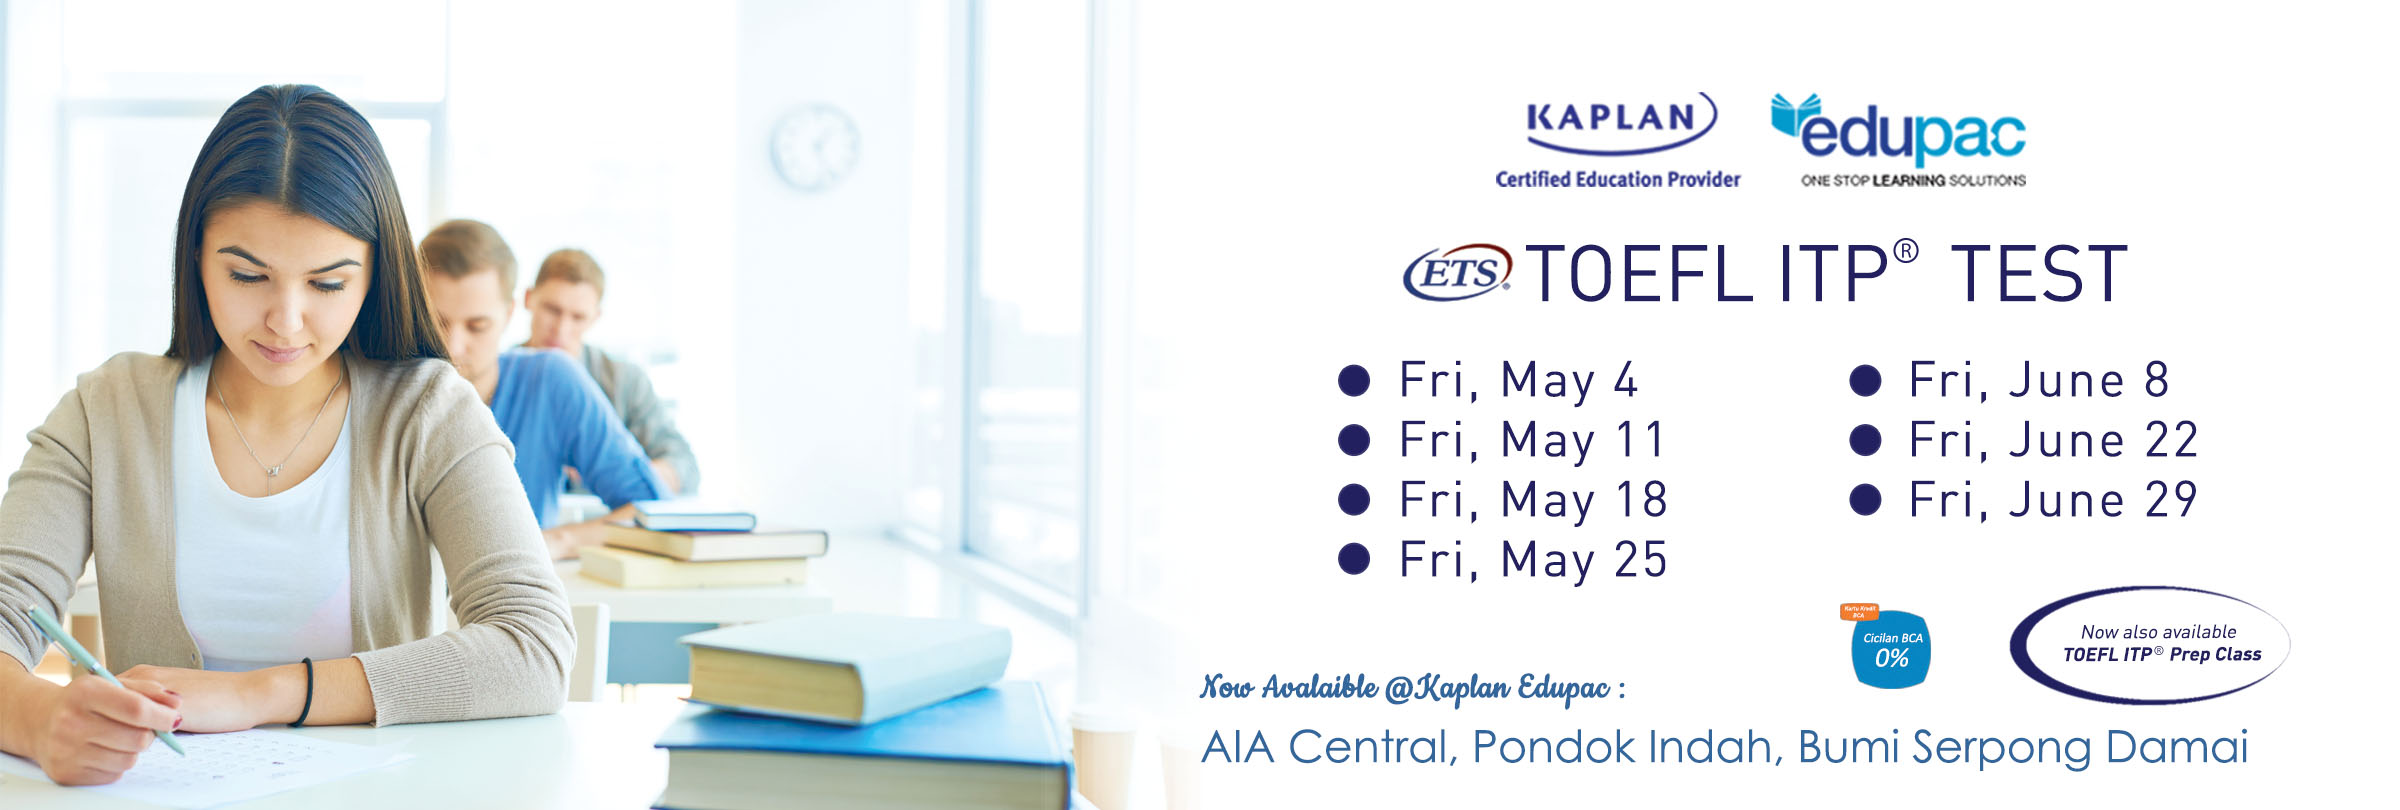 Jakarta TOEFL ITP Test Schedule for May-June 2018